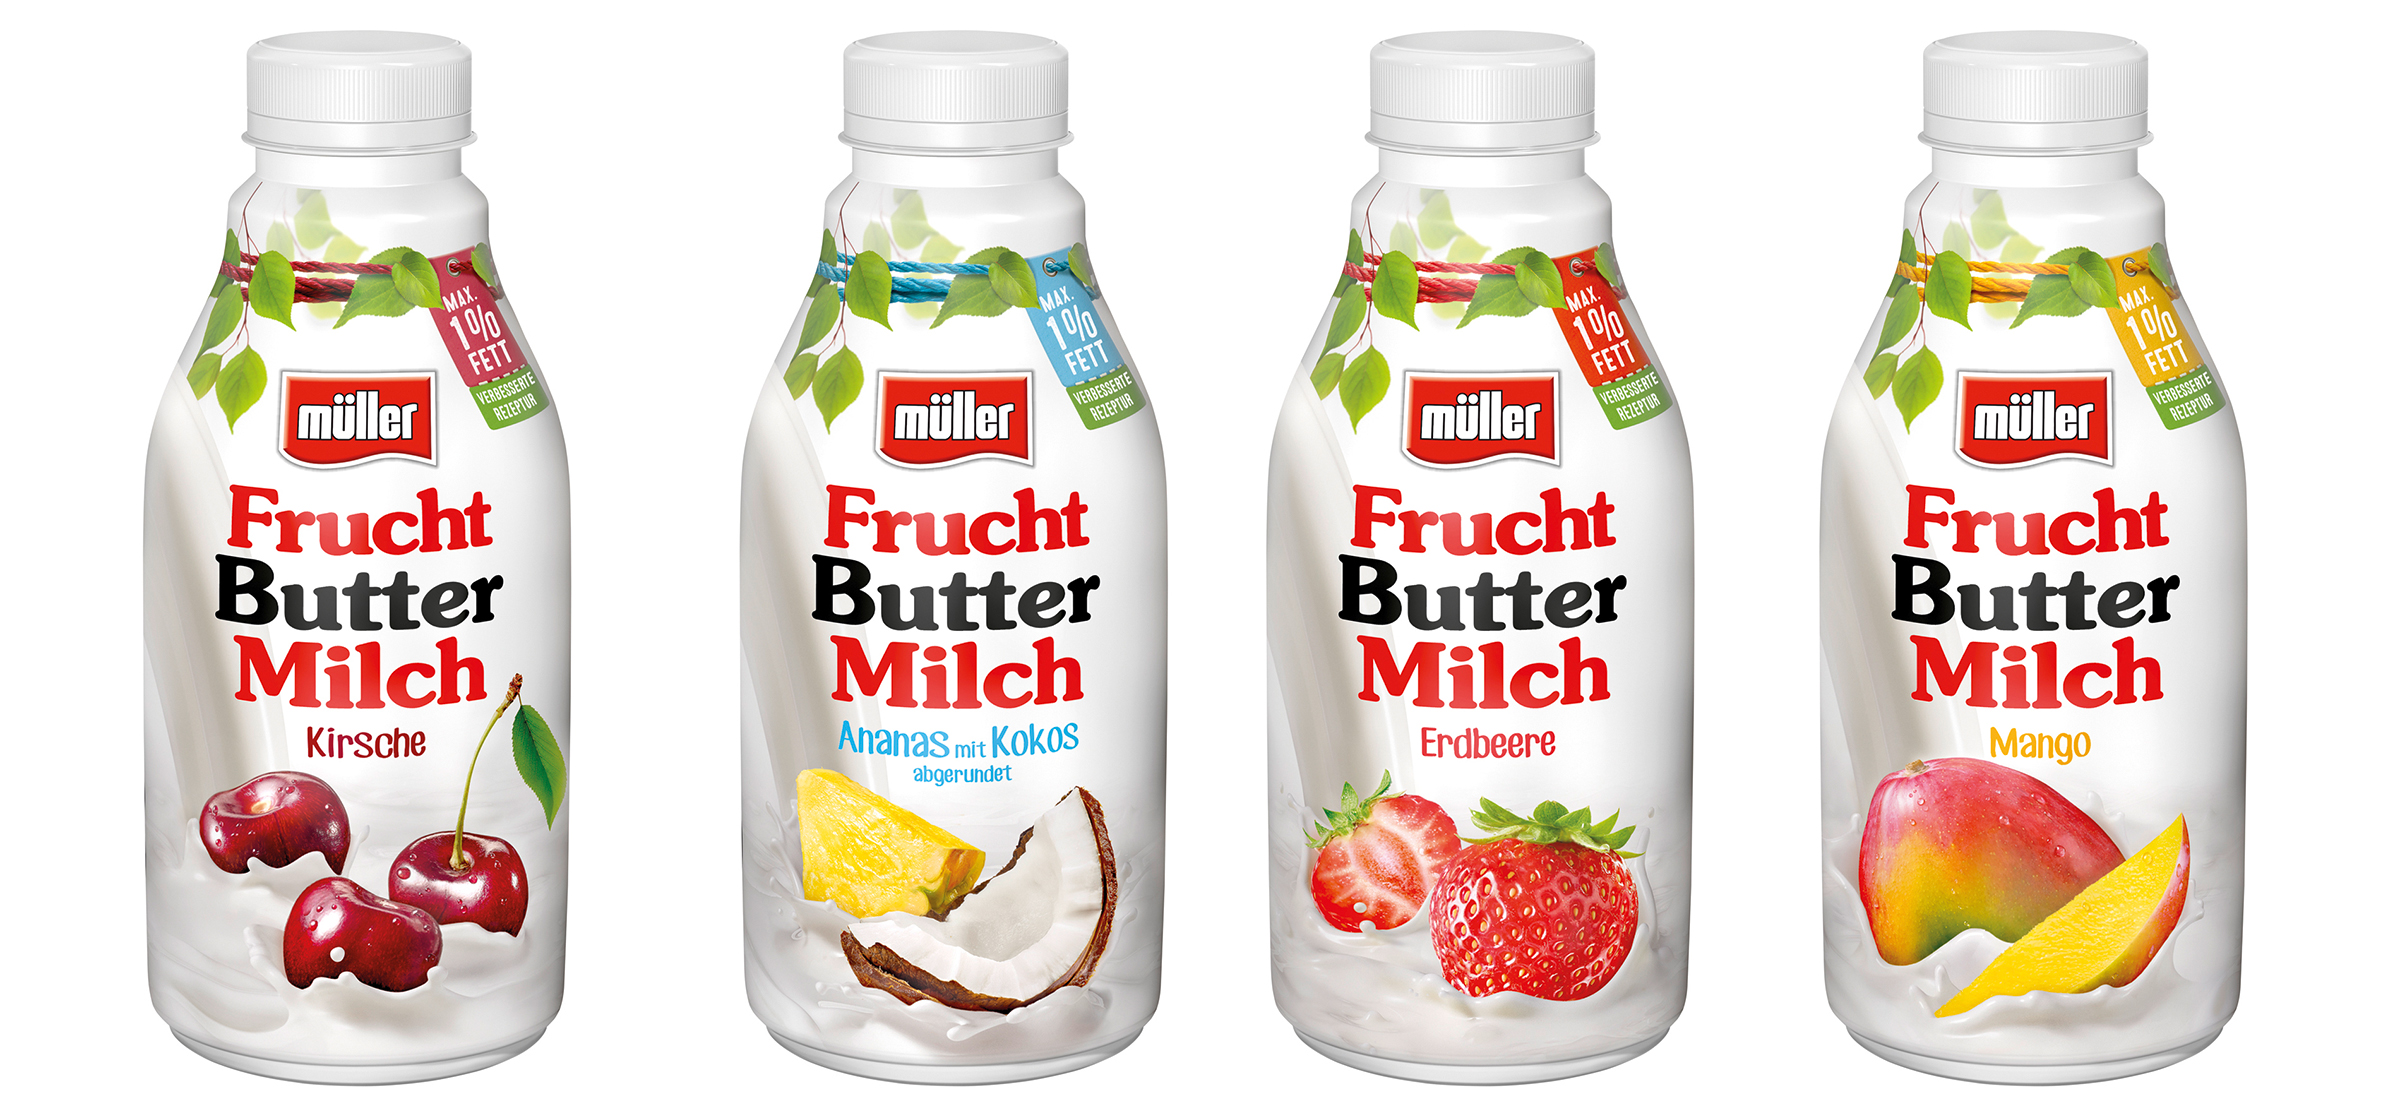 pack shots, 4 packages of Müller milk fruit butter milk as a cut out in front of white background